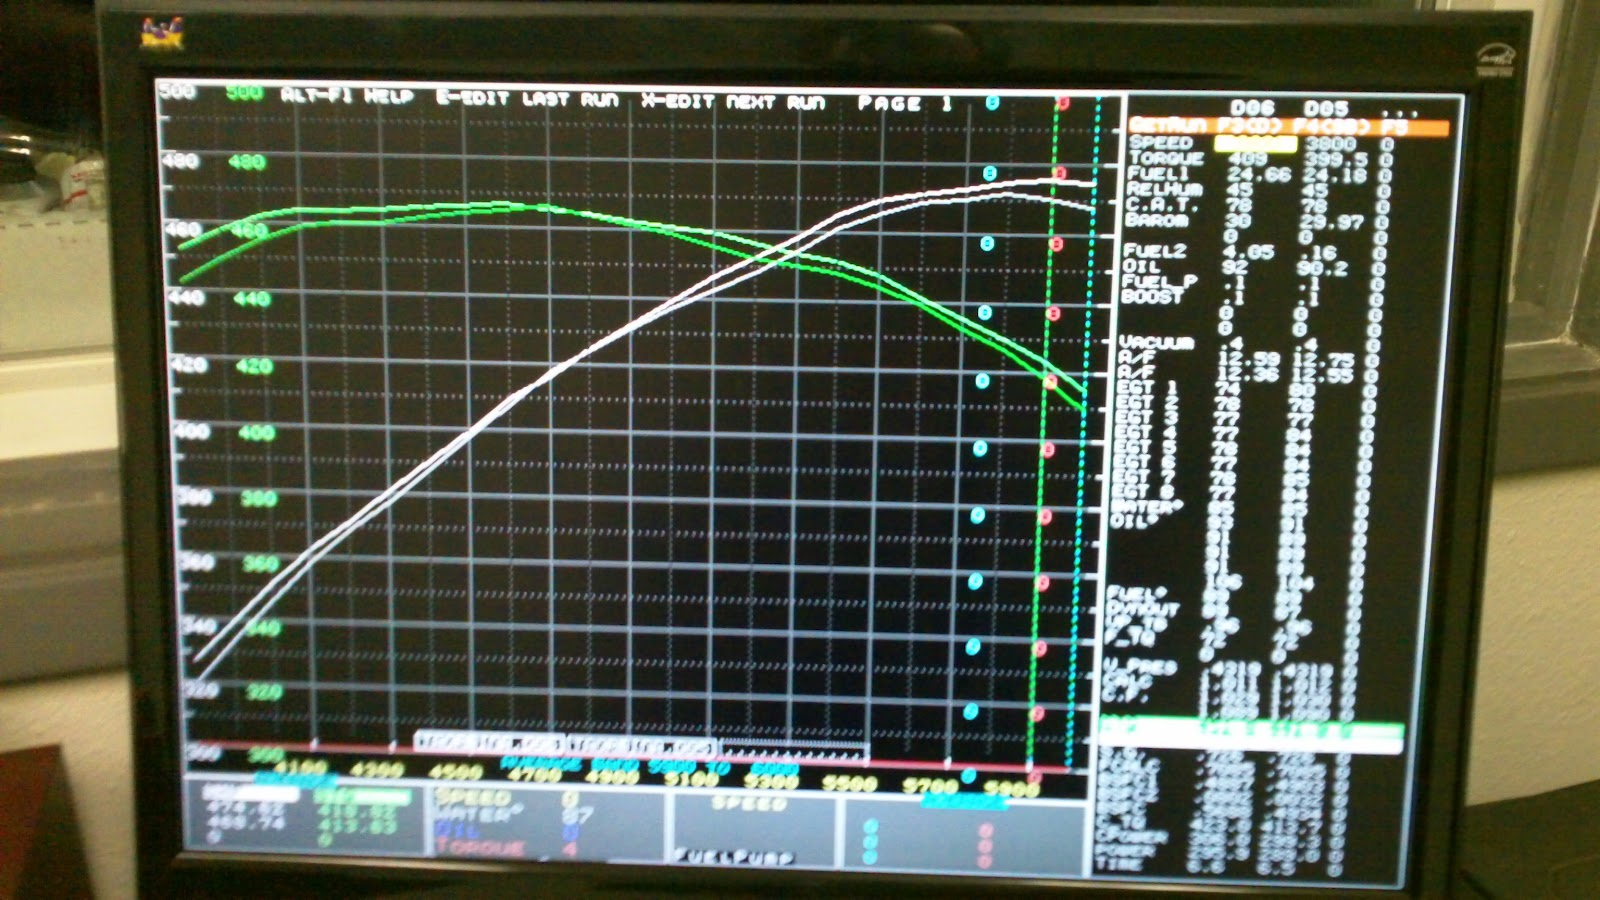 tunedbytad EFI - LSX - Dyno Tuning: LT1 Engine Dyno now available at